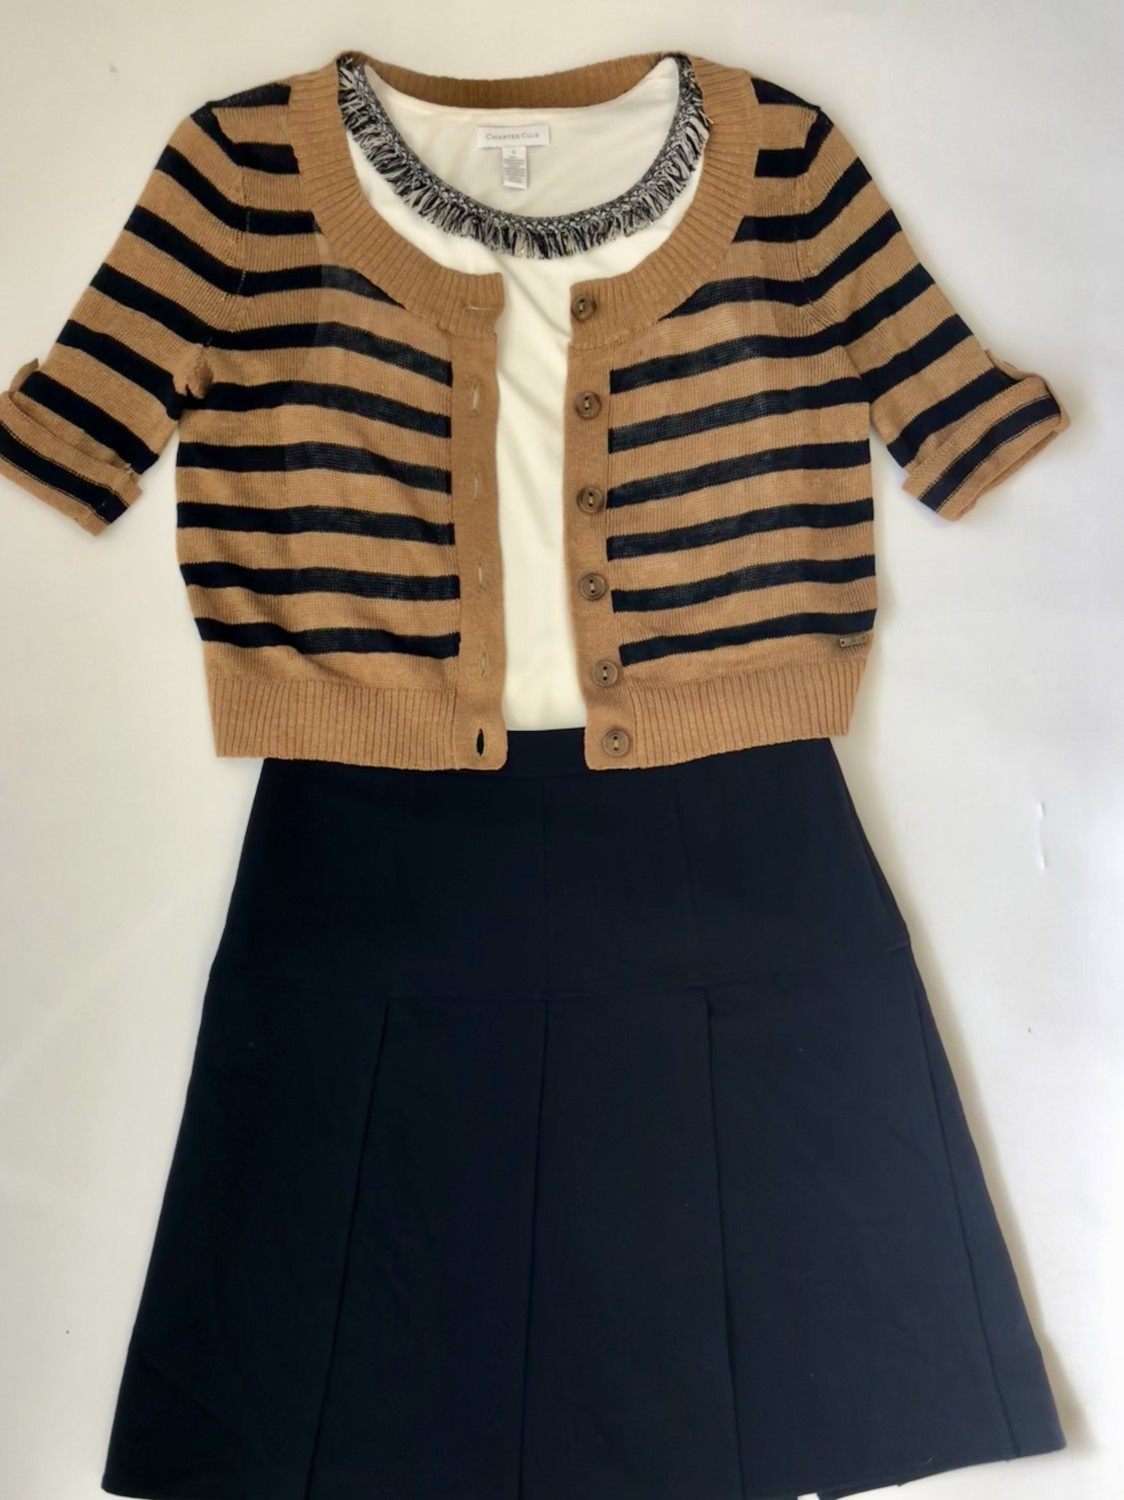 Charter Club Top, Tommy Hilfiger Sweater – Original Retail: $128, CWS: $30, Liquidation: $7.50